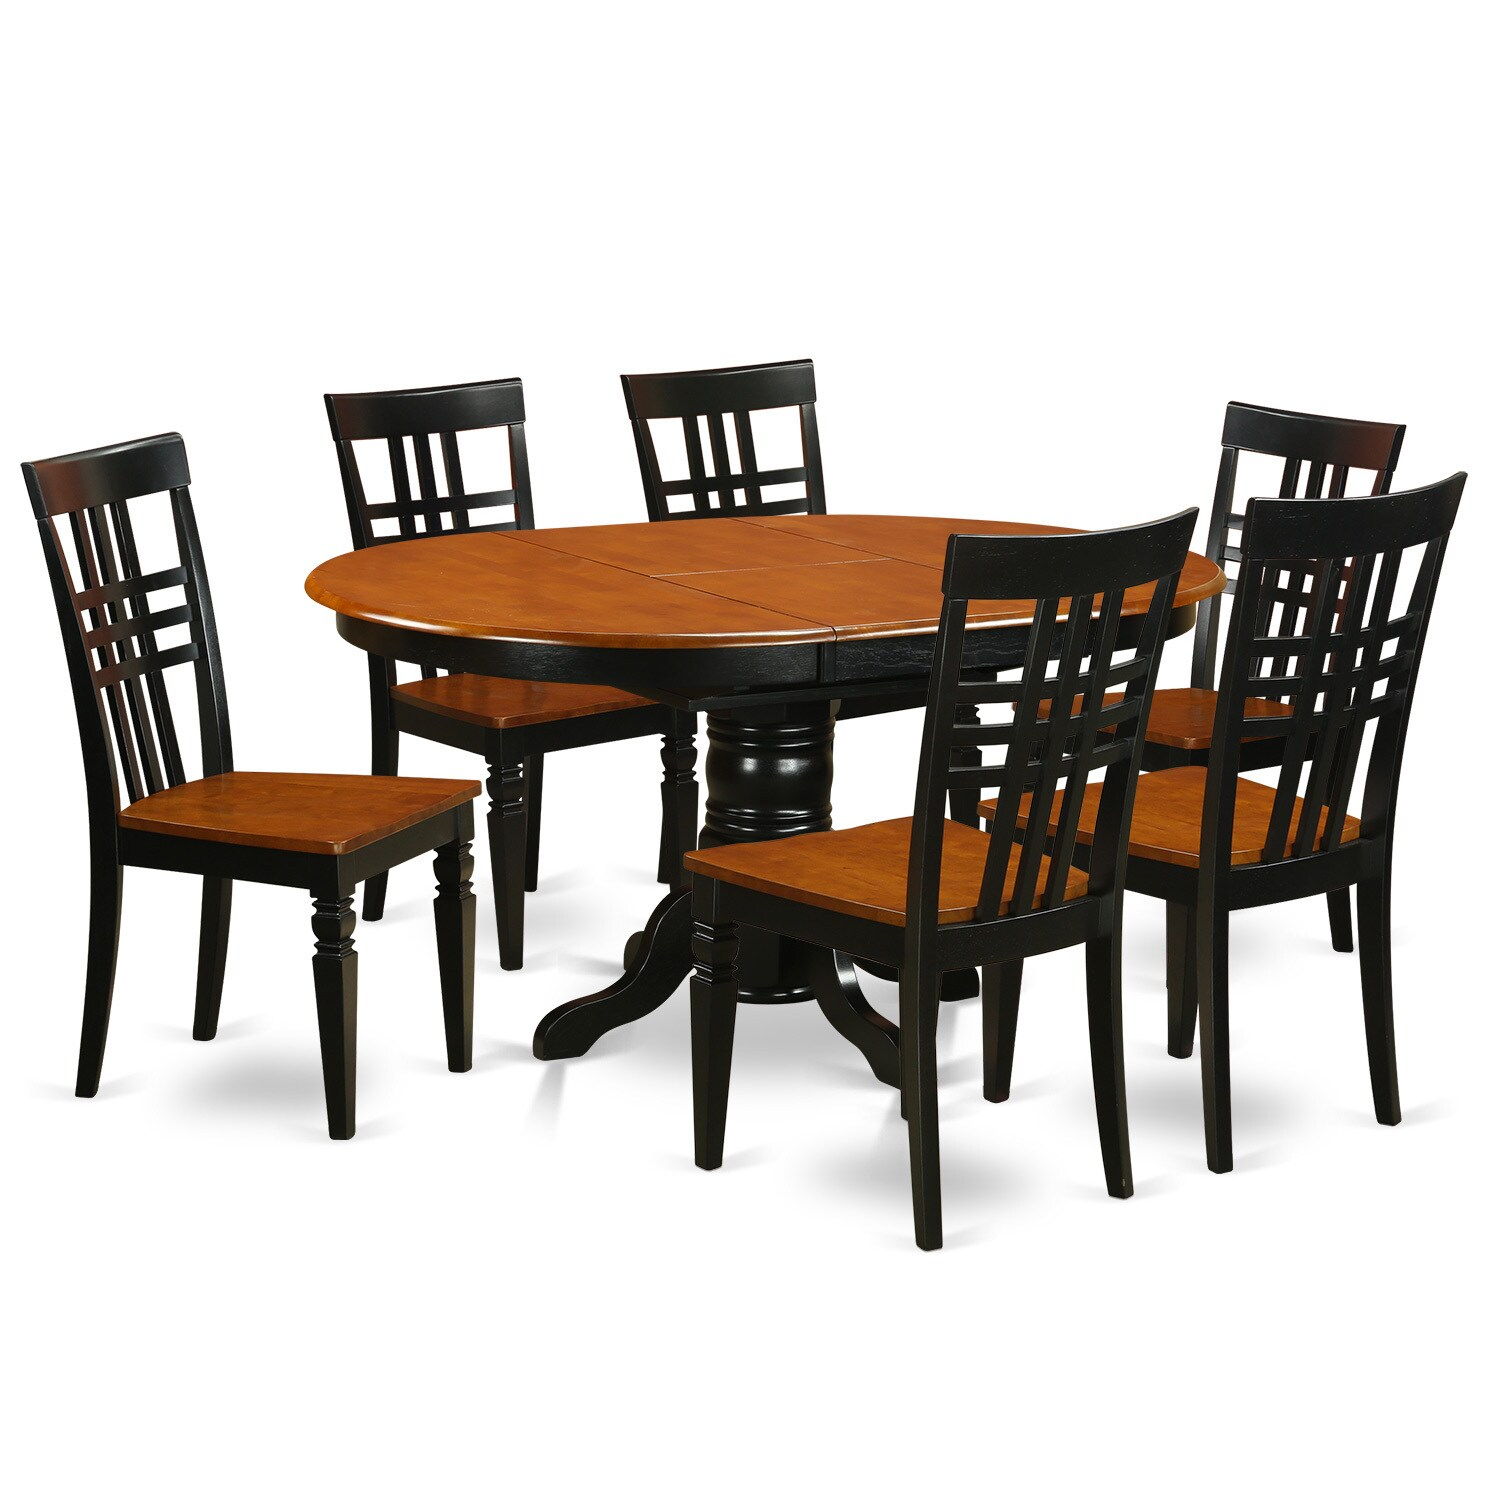 Black Dining Room Table And Chairs Kelg7 W 7 Piece Dinette Set With One Kenley Table And Six Dining Room Chairs